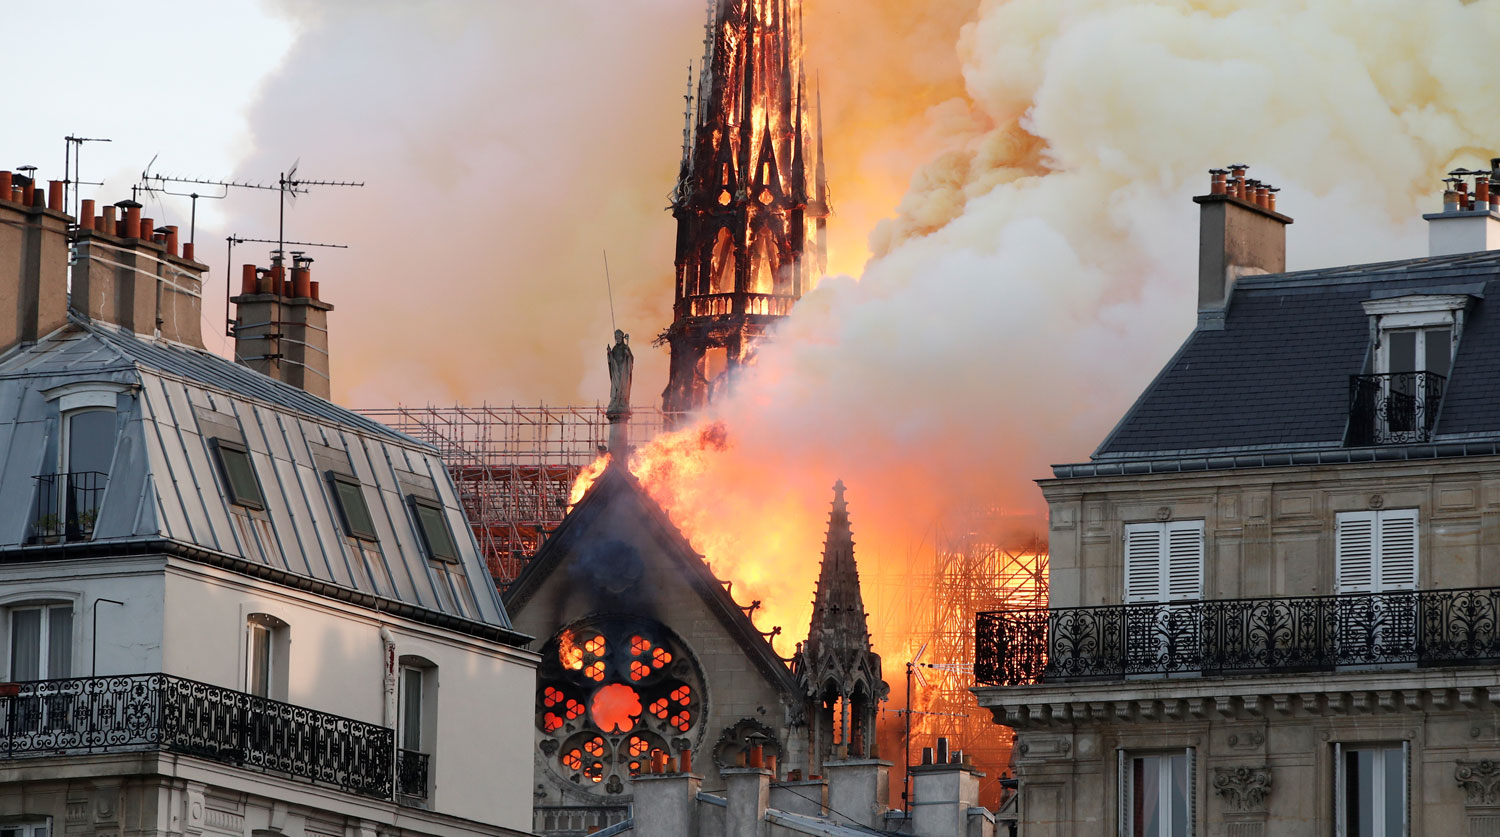 Smoke billows as fire engulfs the spire of Notre Dame Cathedral in Paris, France April 15, 2019. REUTERS/Benoit Tessier - RC19CF540000